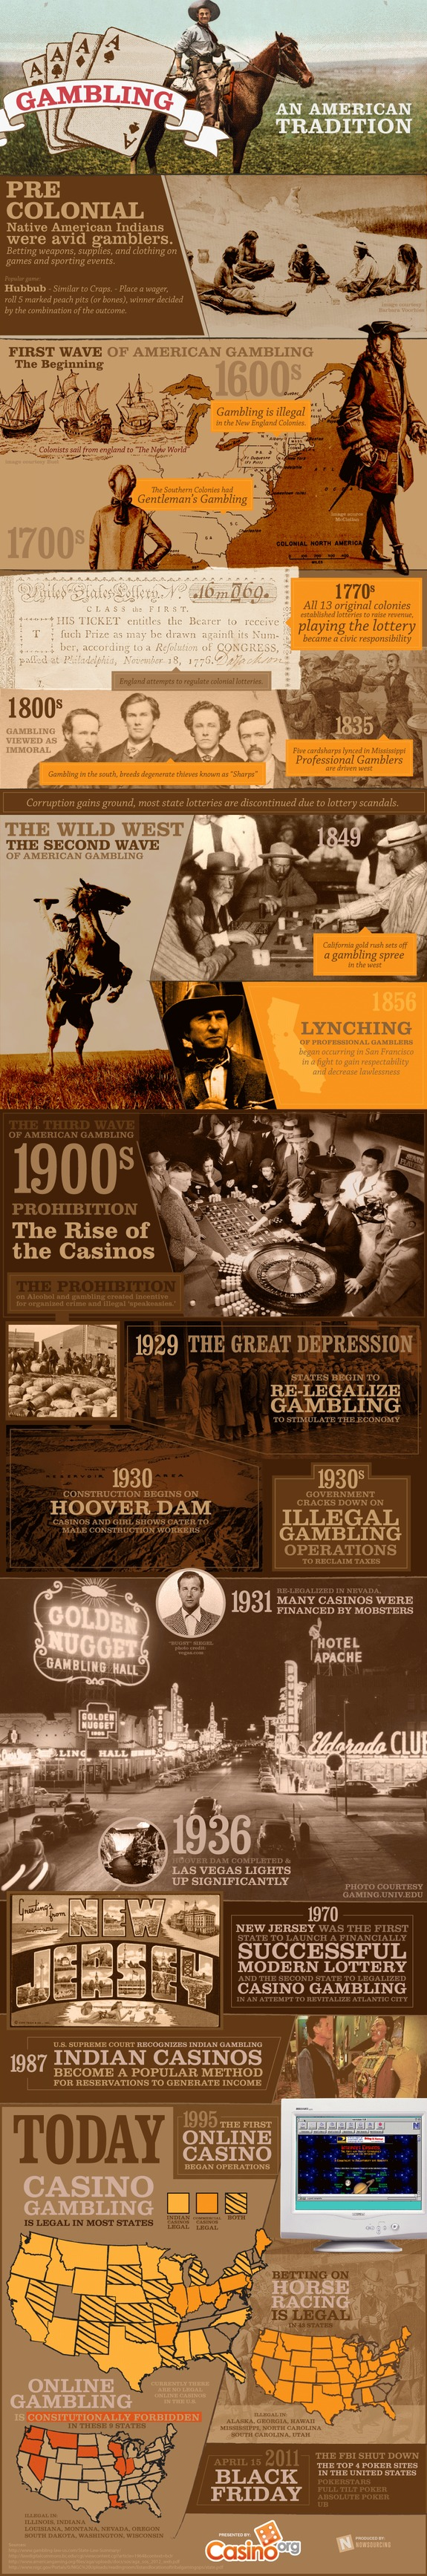 The History of American Gambling